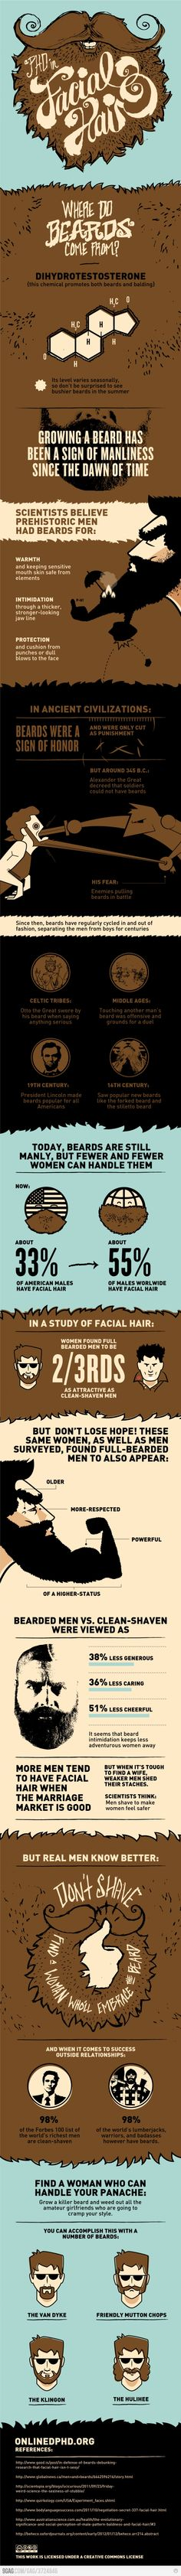 Where do beards come from?